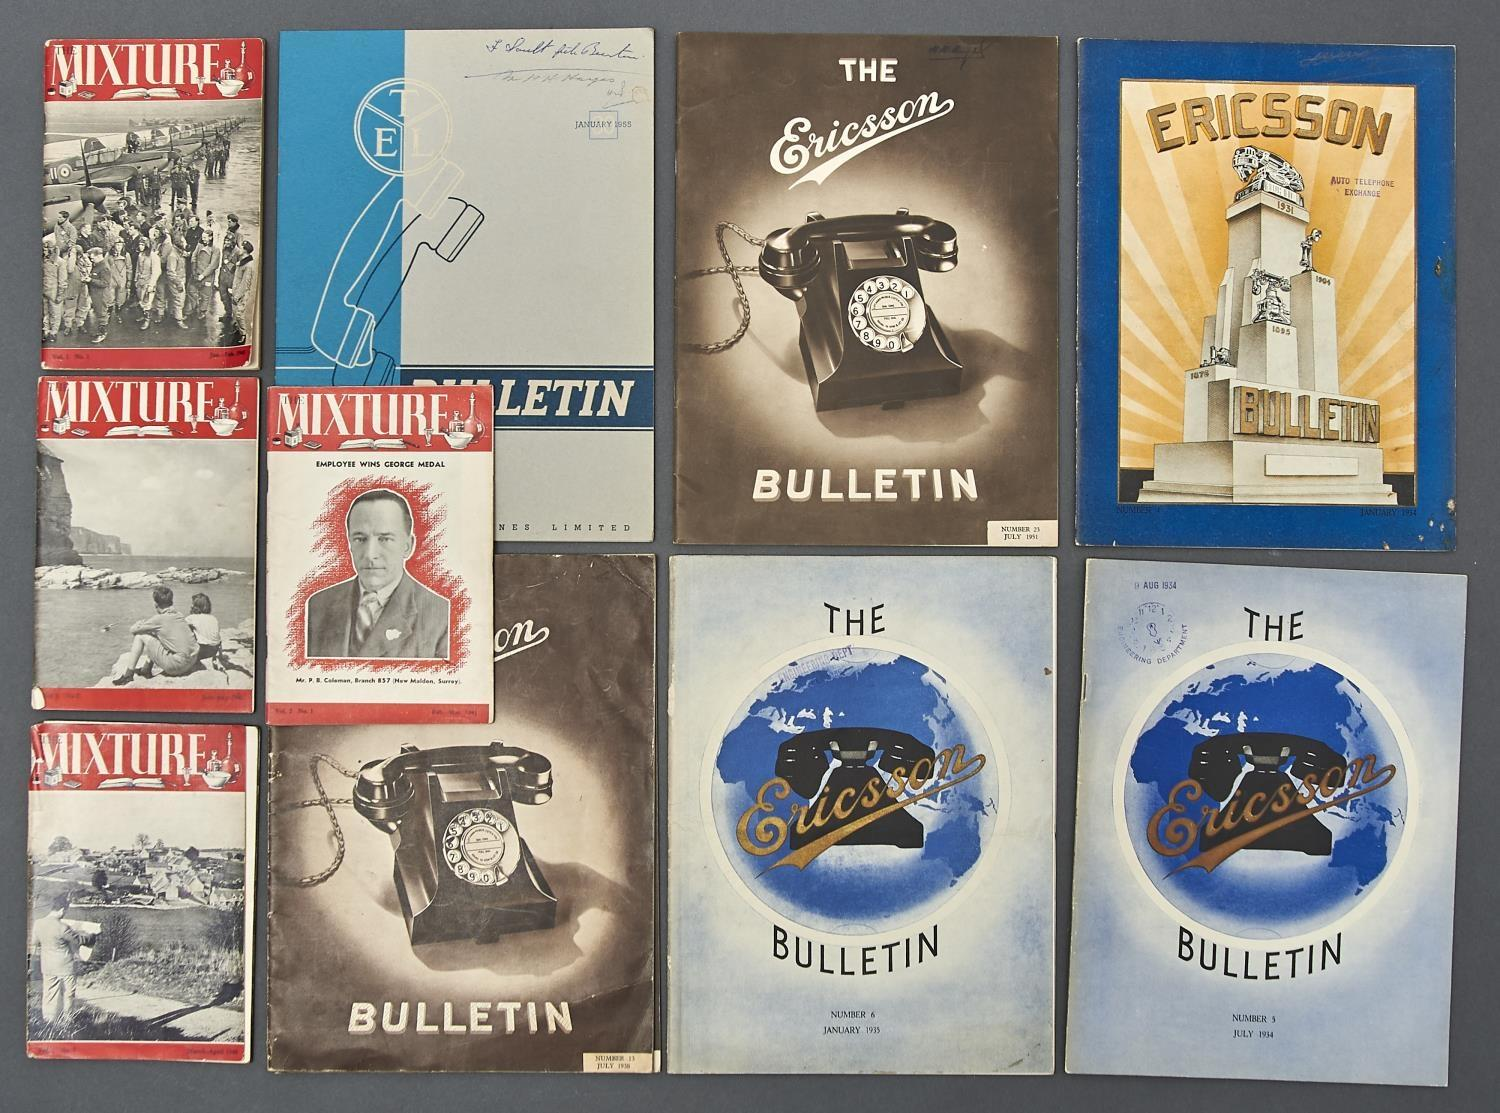 VARIOUS VINTAGE PRINTED EPHEMERA, INCLUDING THE MIXTURE, ERICSSON BULLETIN